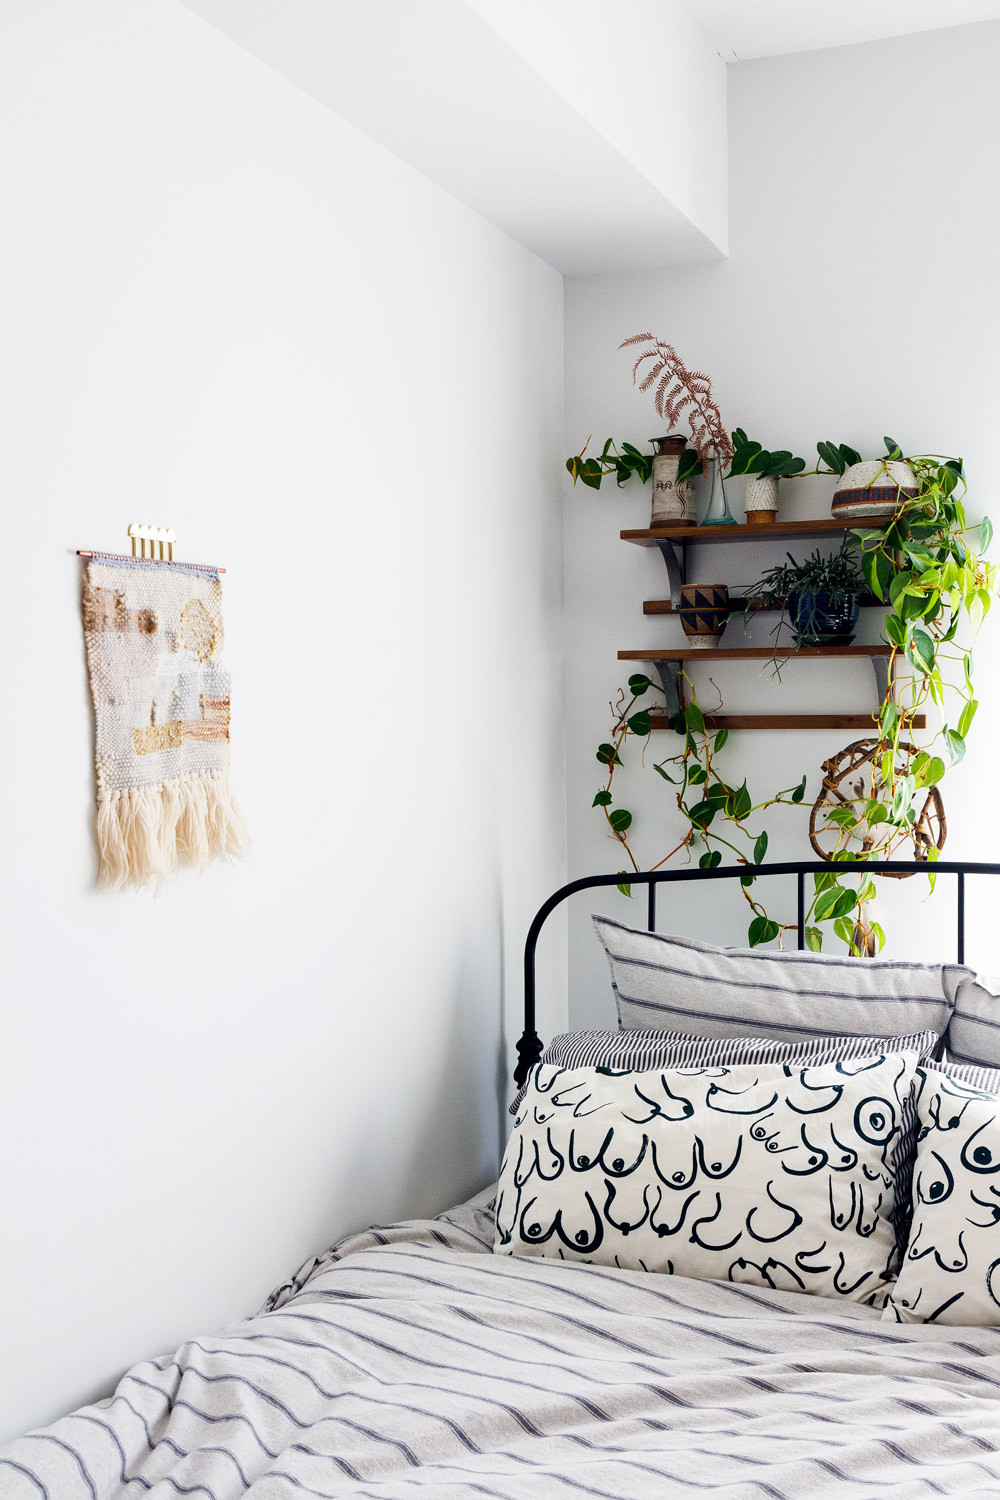 The White Wall Controversy: How the All-White Aesthetic ... on Room Decor Aesthetic id=51810